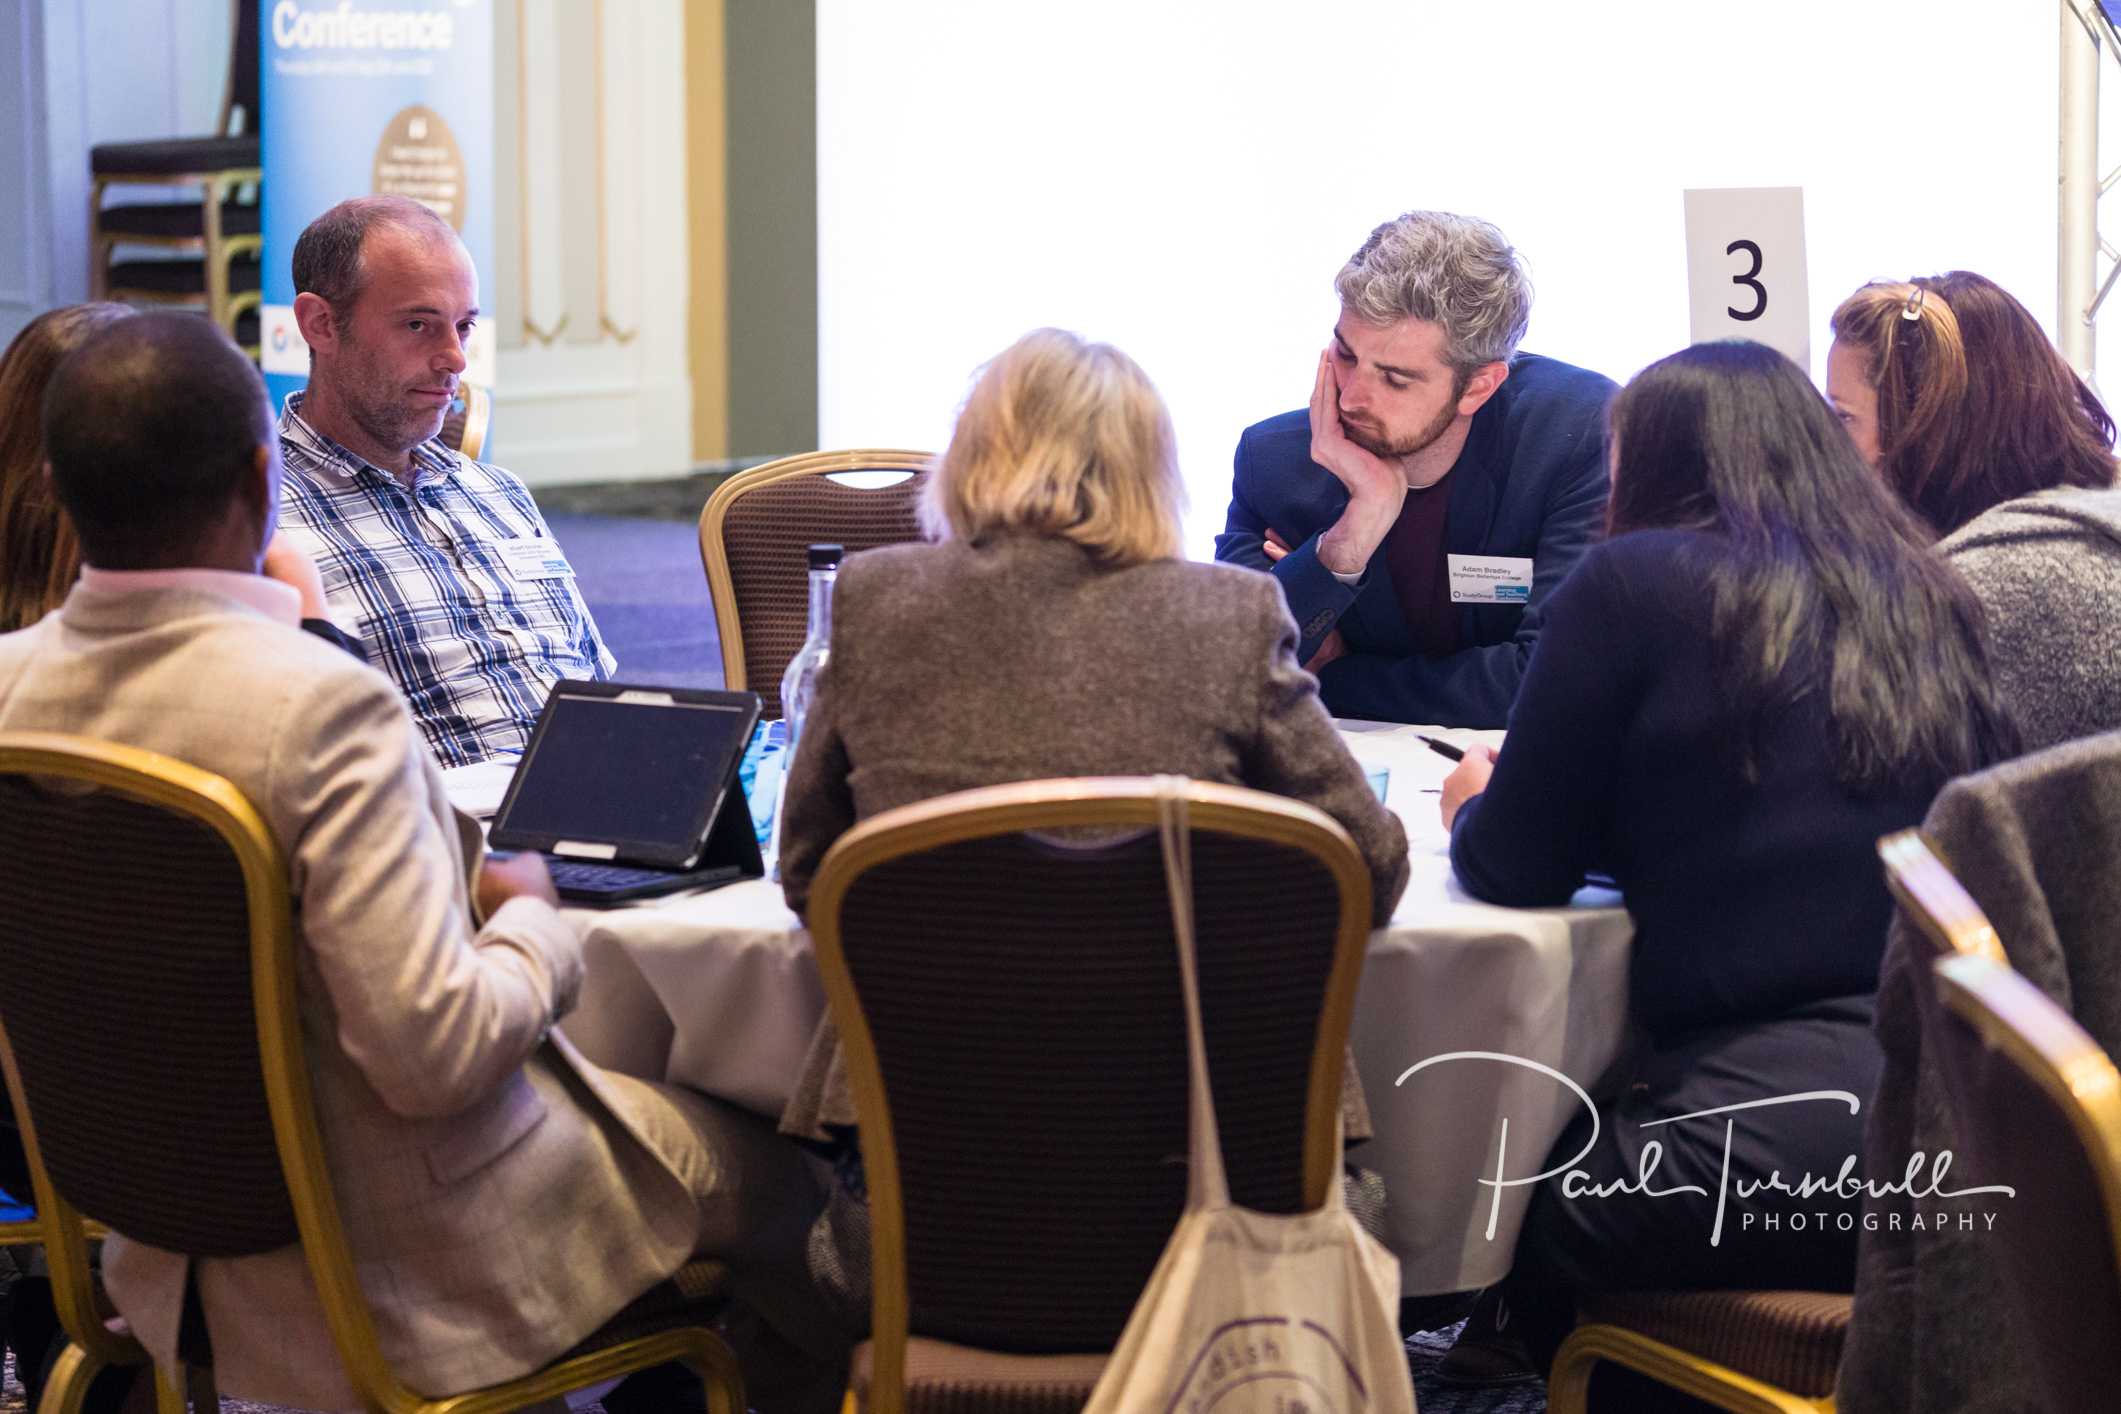 conference-event-photographer-queens-hotel-leeds-yorkshire-071.jpg